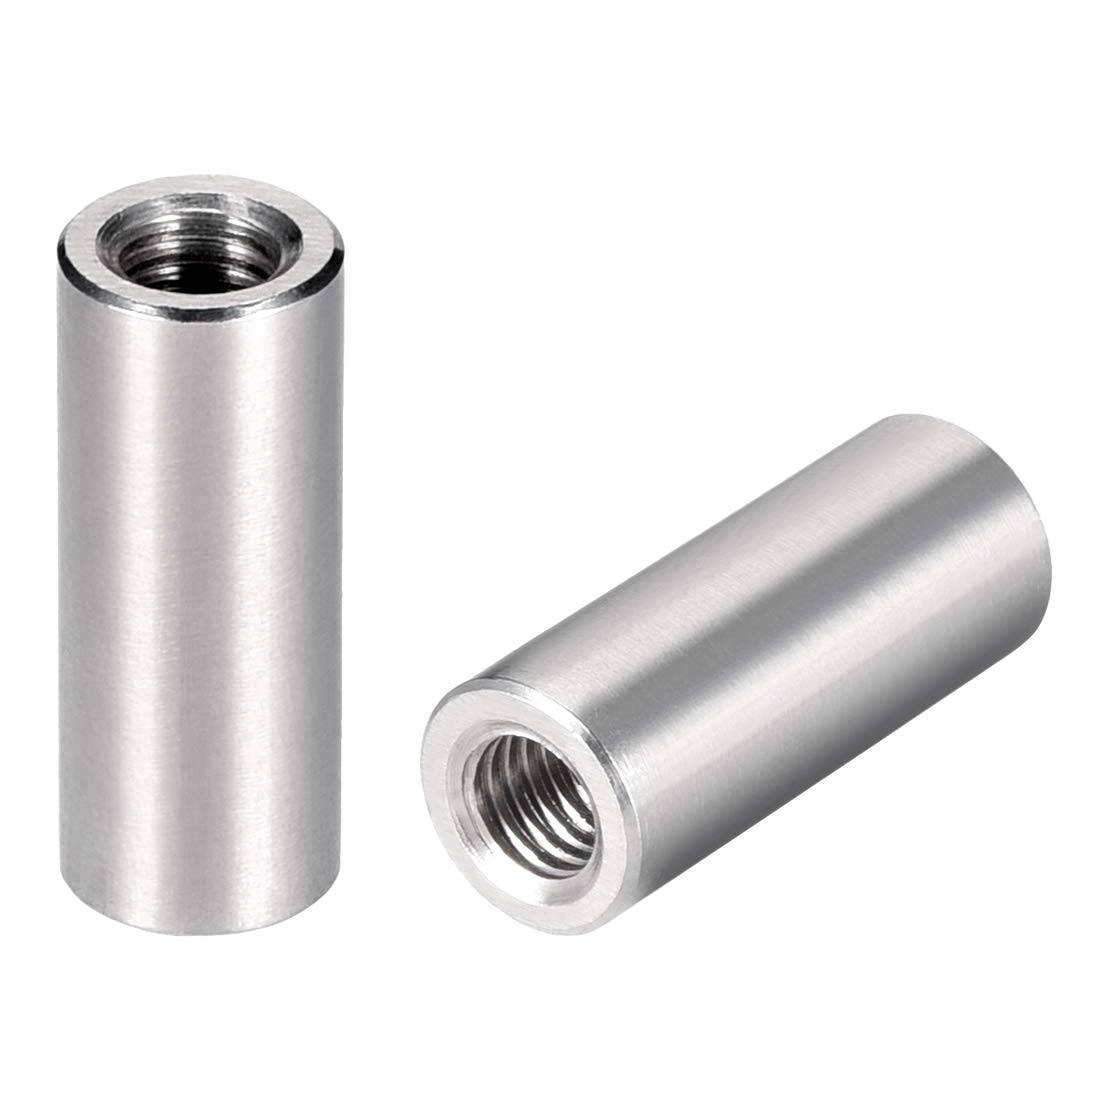 uxcell Round Connector Nuts, M6x25mm Height Sleeve Rod bar Stud Nut, Stainless Steel 304, Pack of 20 by uxcell